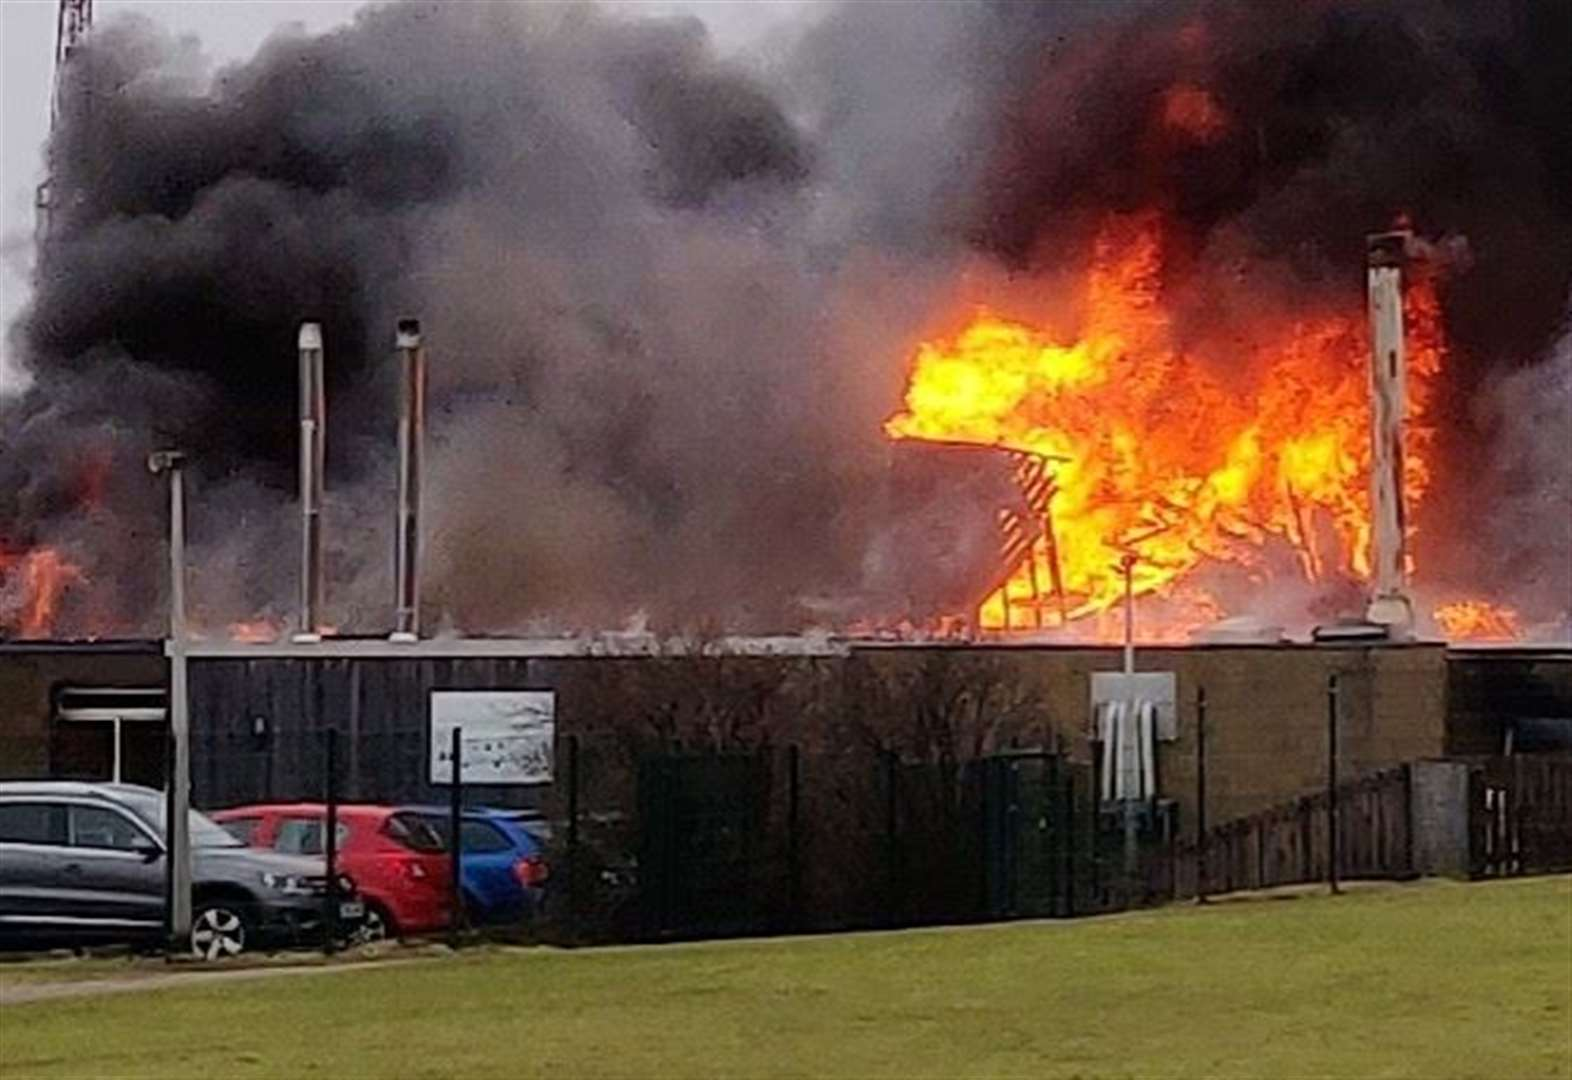 Devastating fire at Invergordon primary school